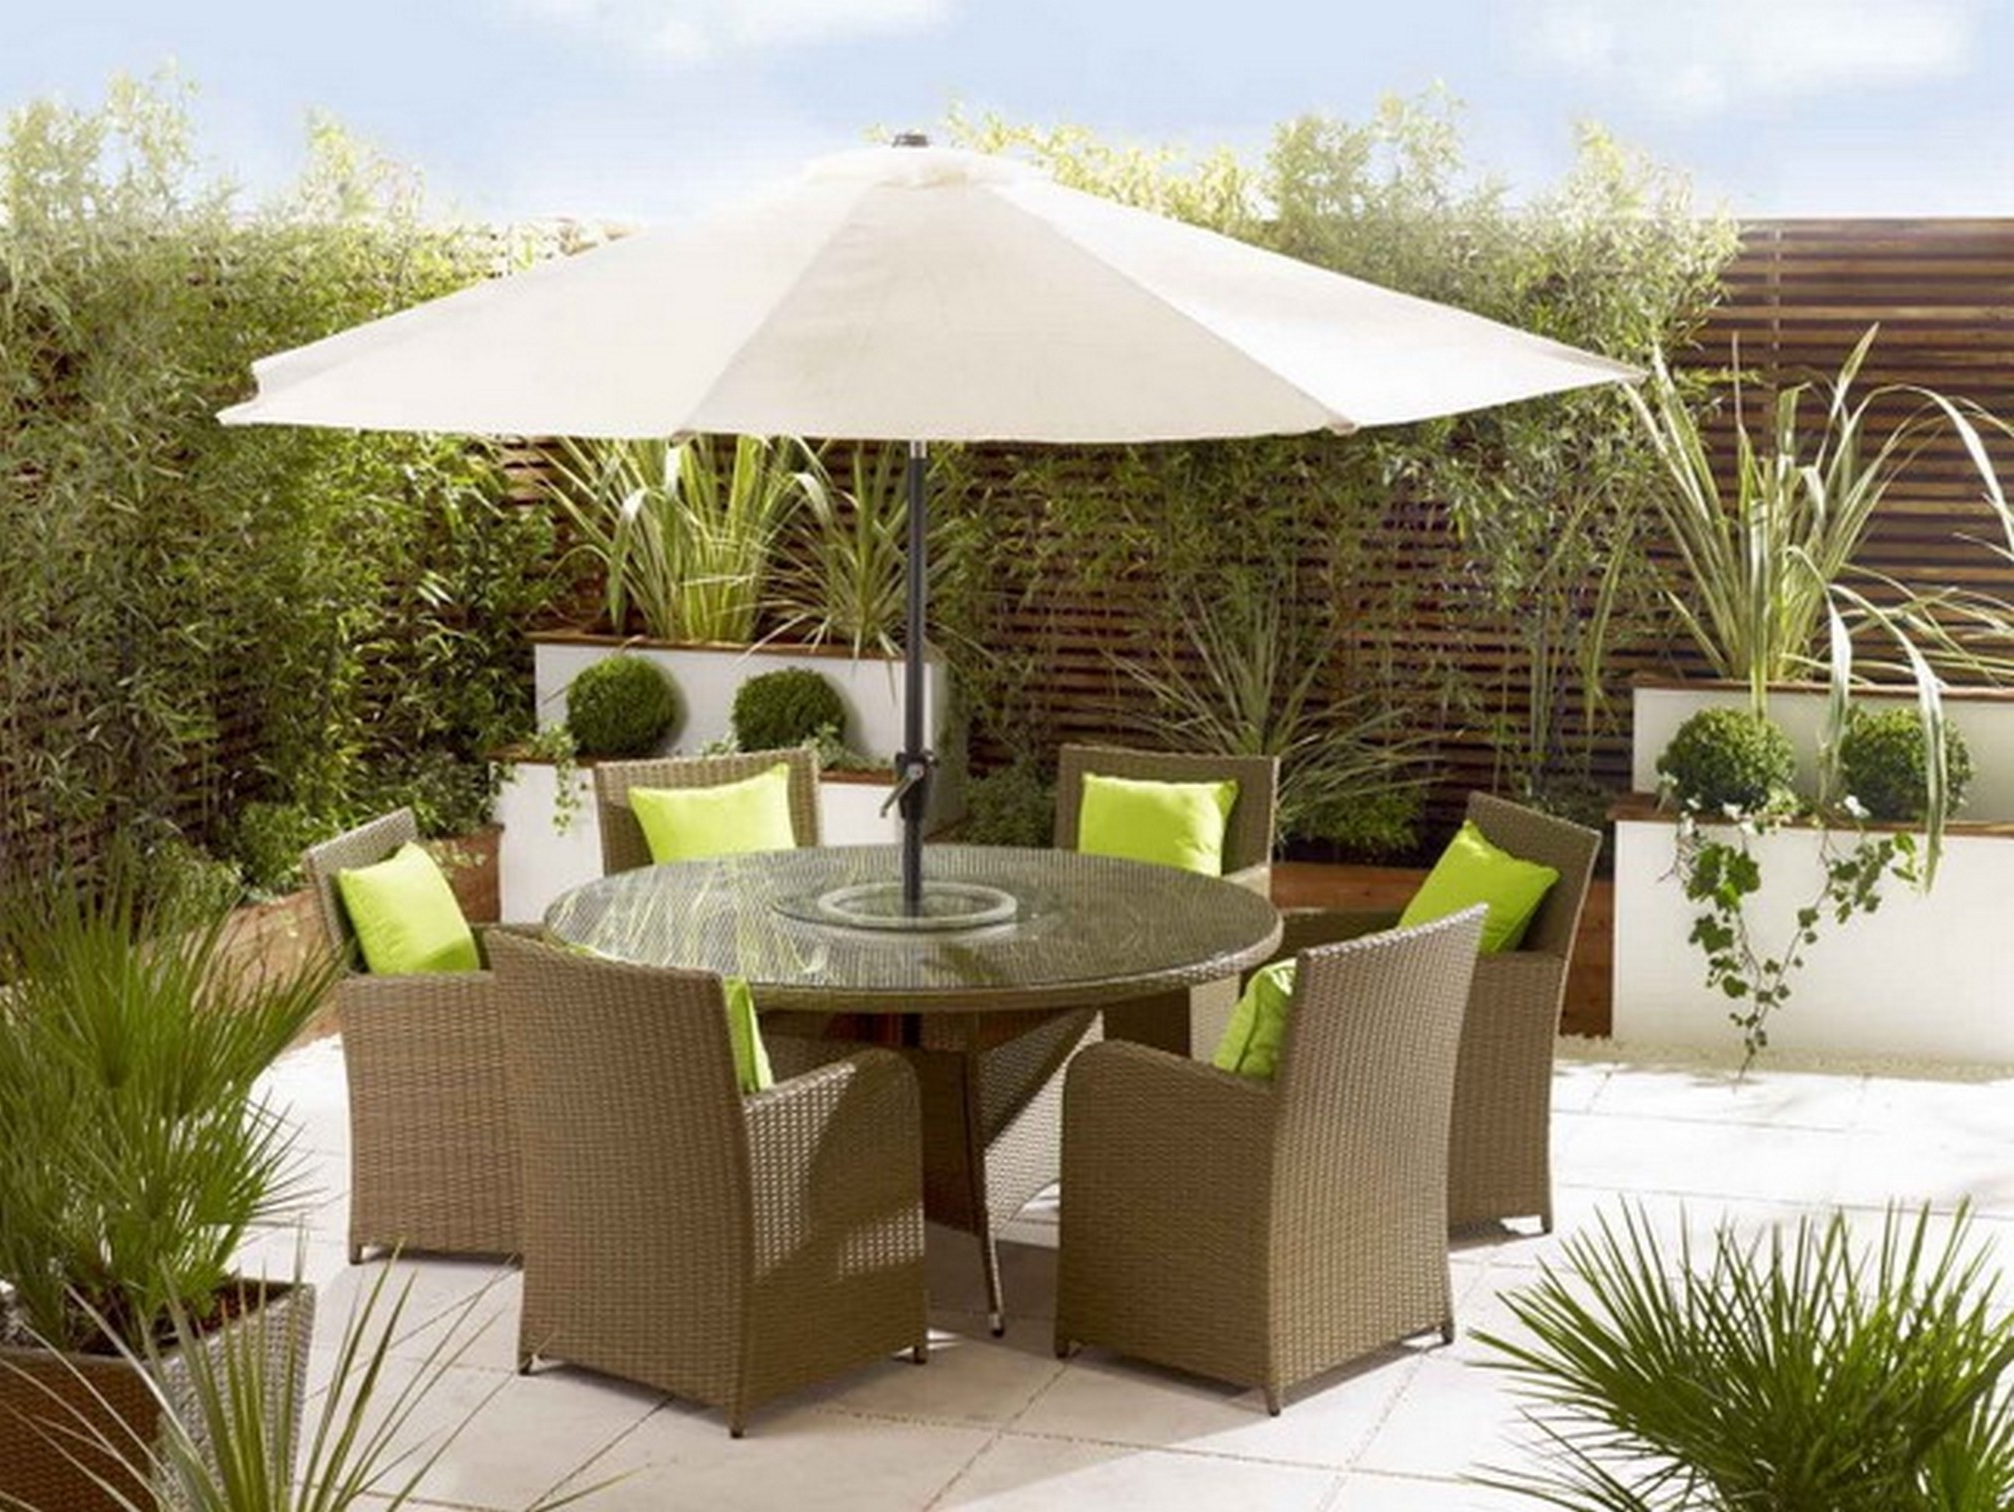 Patio Table Umbrella Cover — Mistikcamping Home Design : The Patio Within Popular Patio Umbrellas With Table (View 7 of 20)